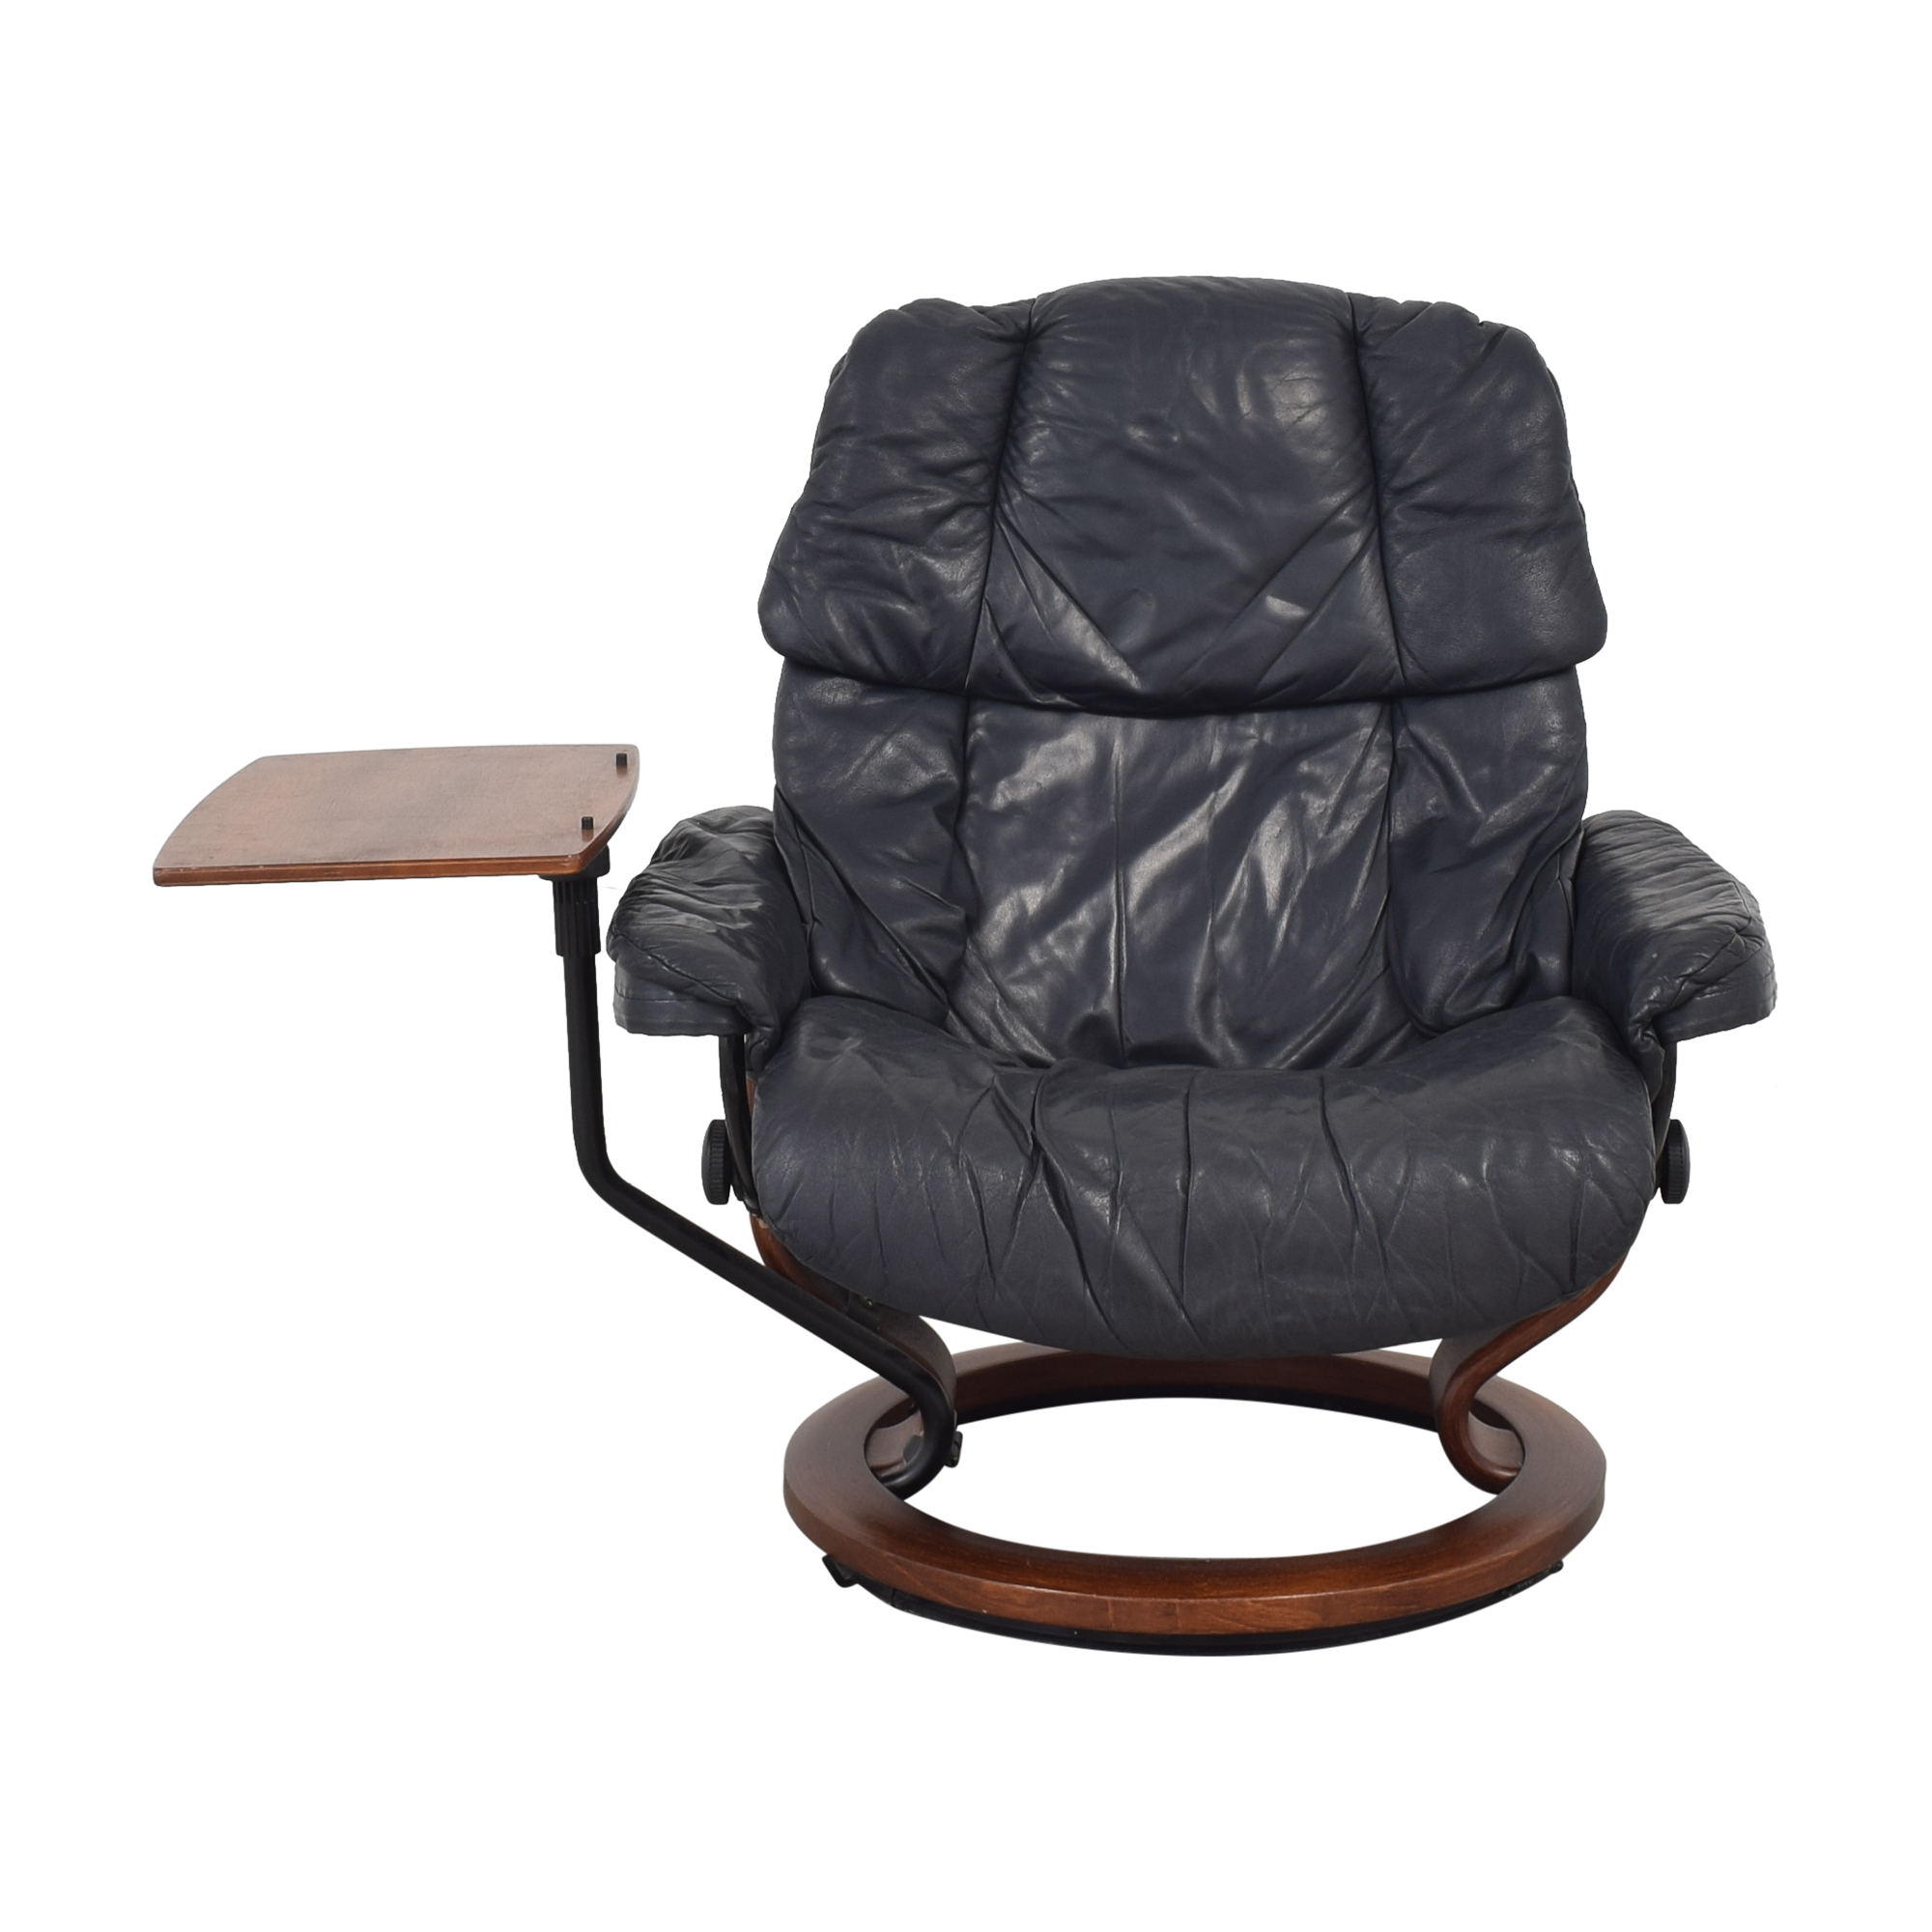 shop Ekornes Stressless Reno with Footstool and Personal Table Ekornes Chairs